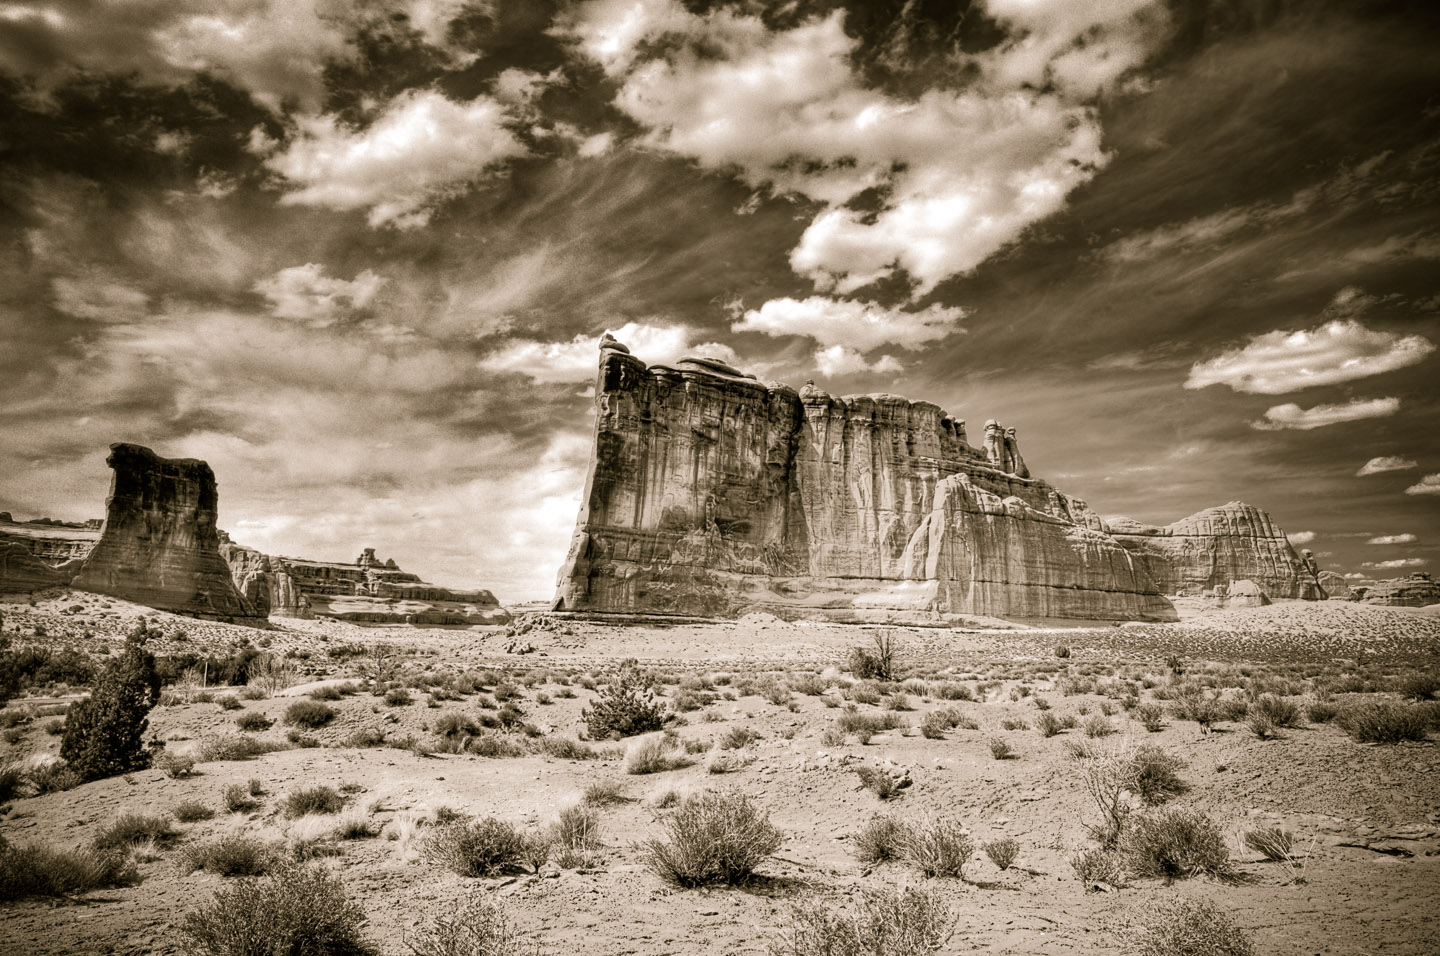 The Tower of Babel in Moab's Arches National Park